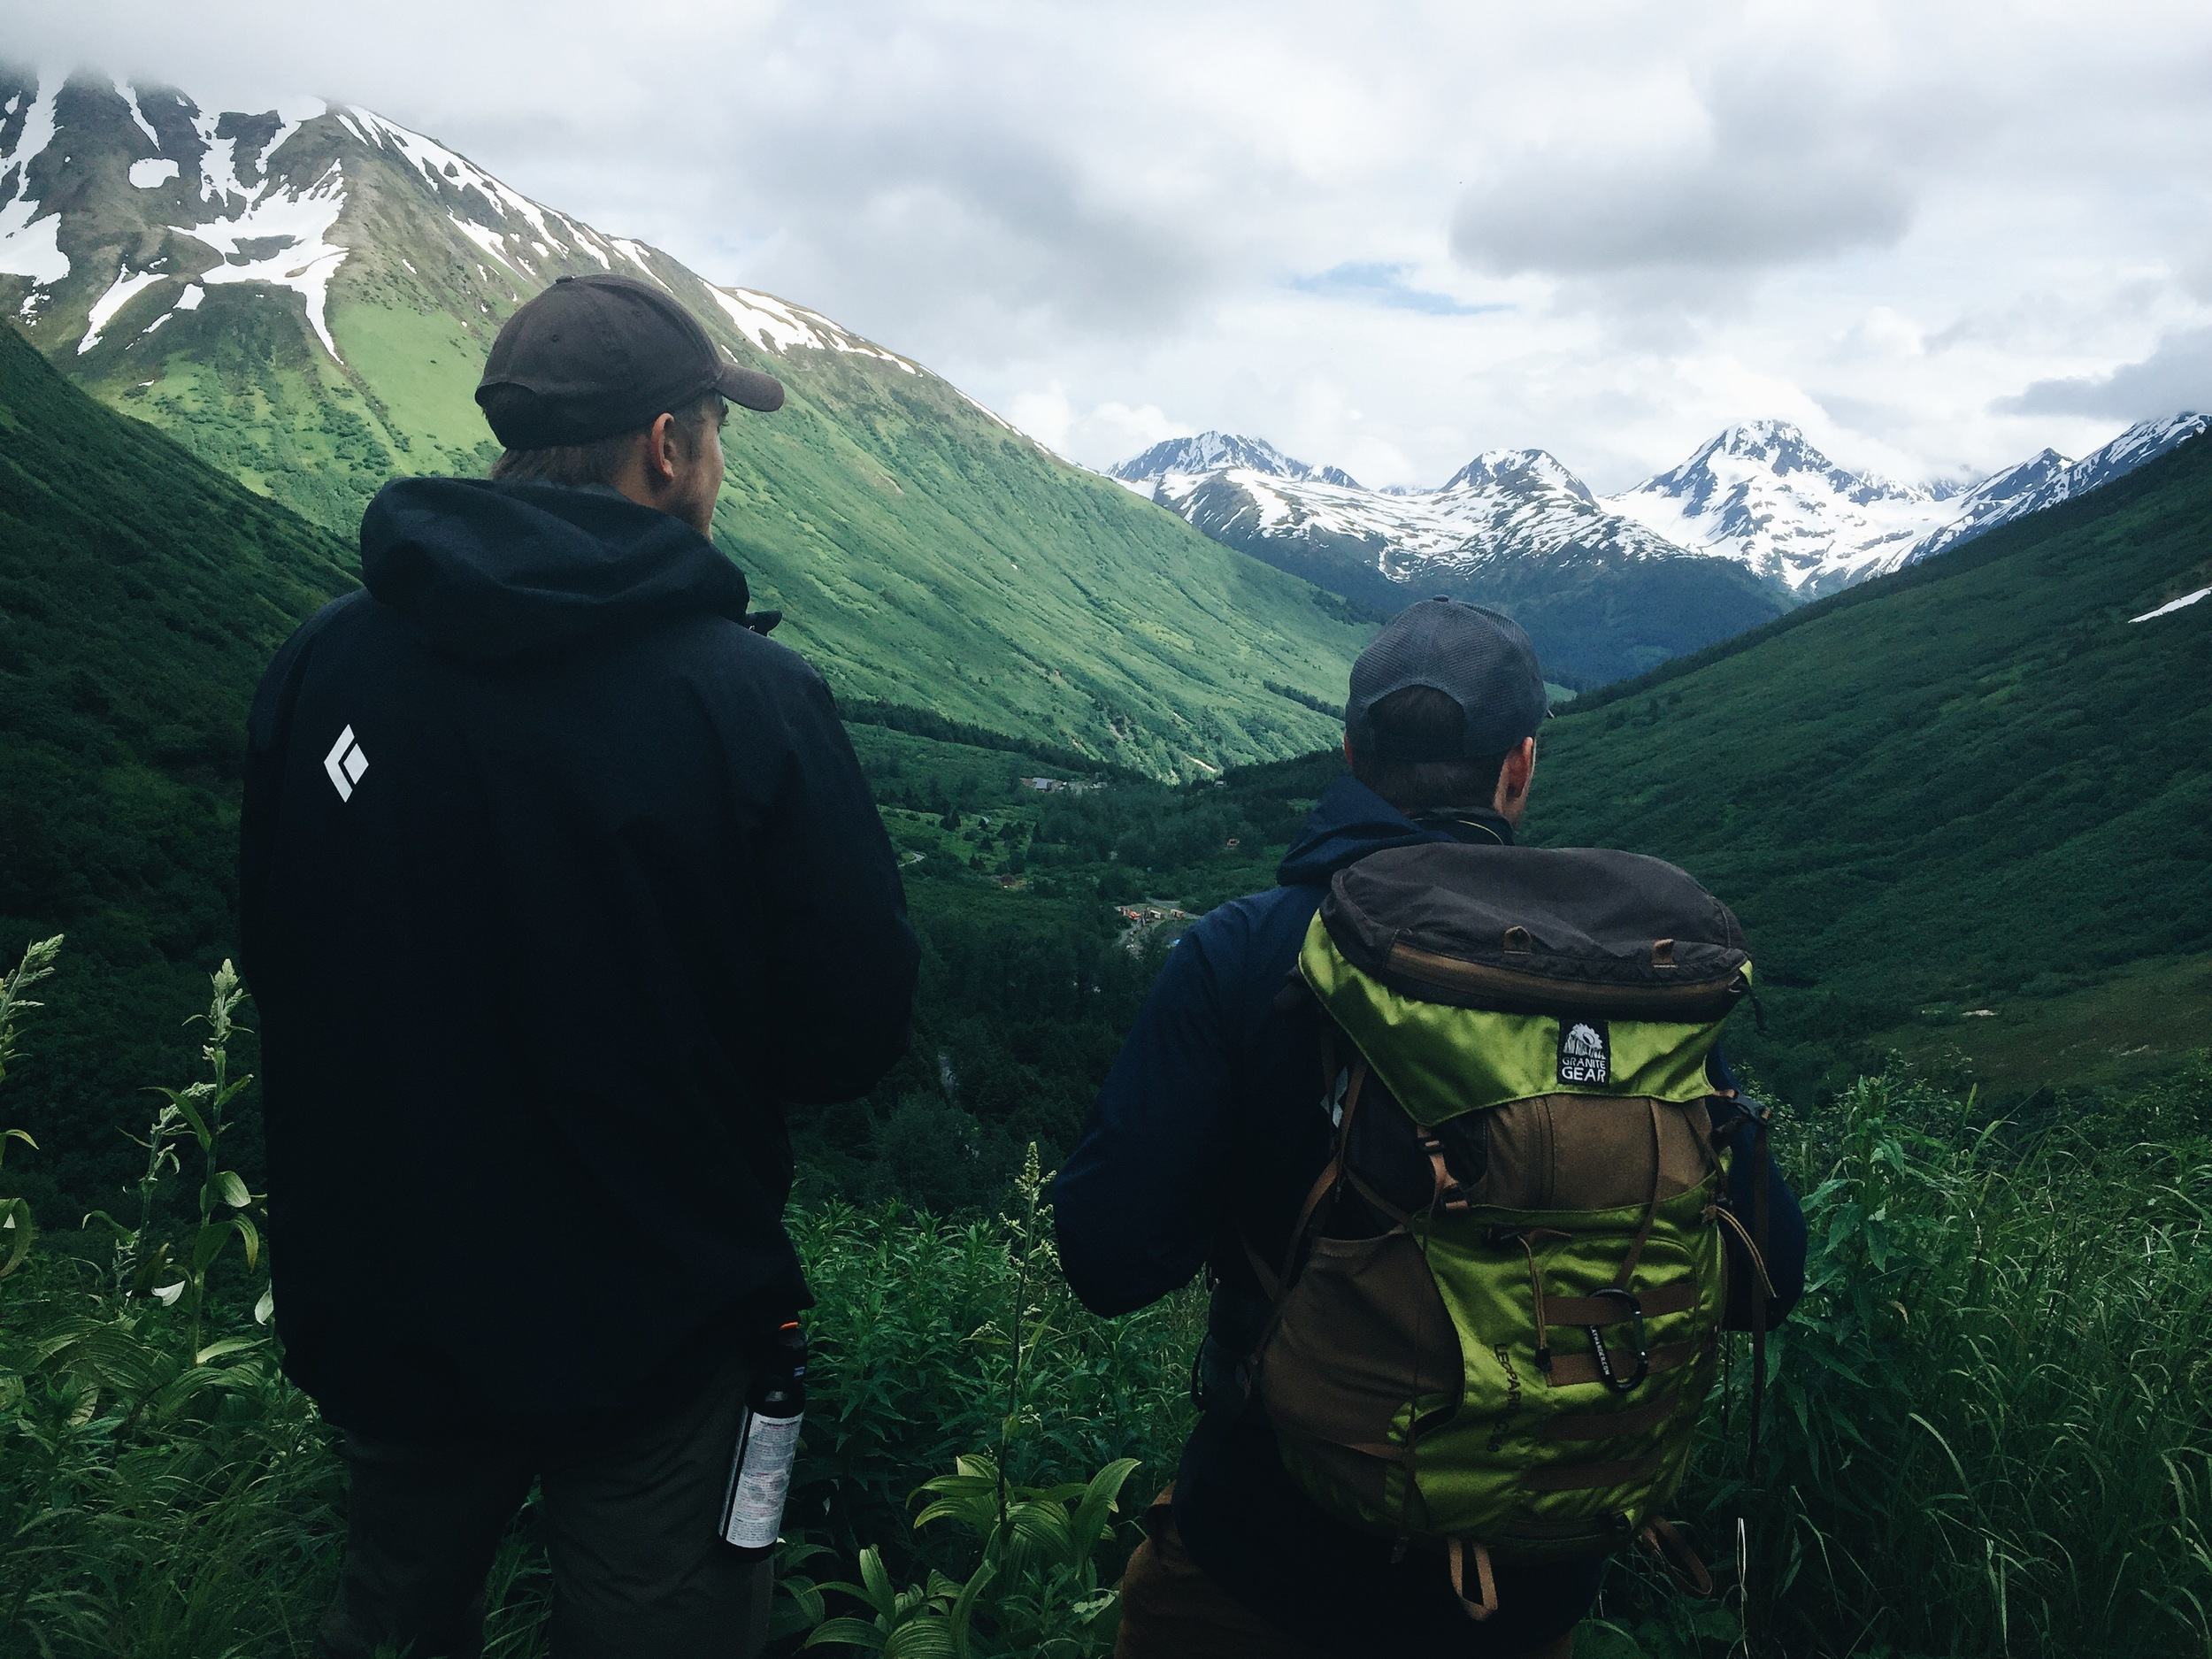 Scouting the descent from Crow Pass trail in Girdwood, Alaska.